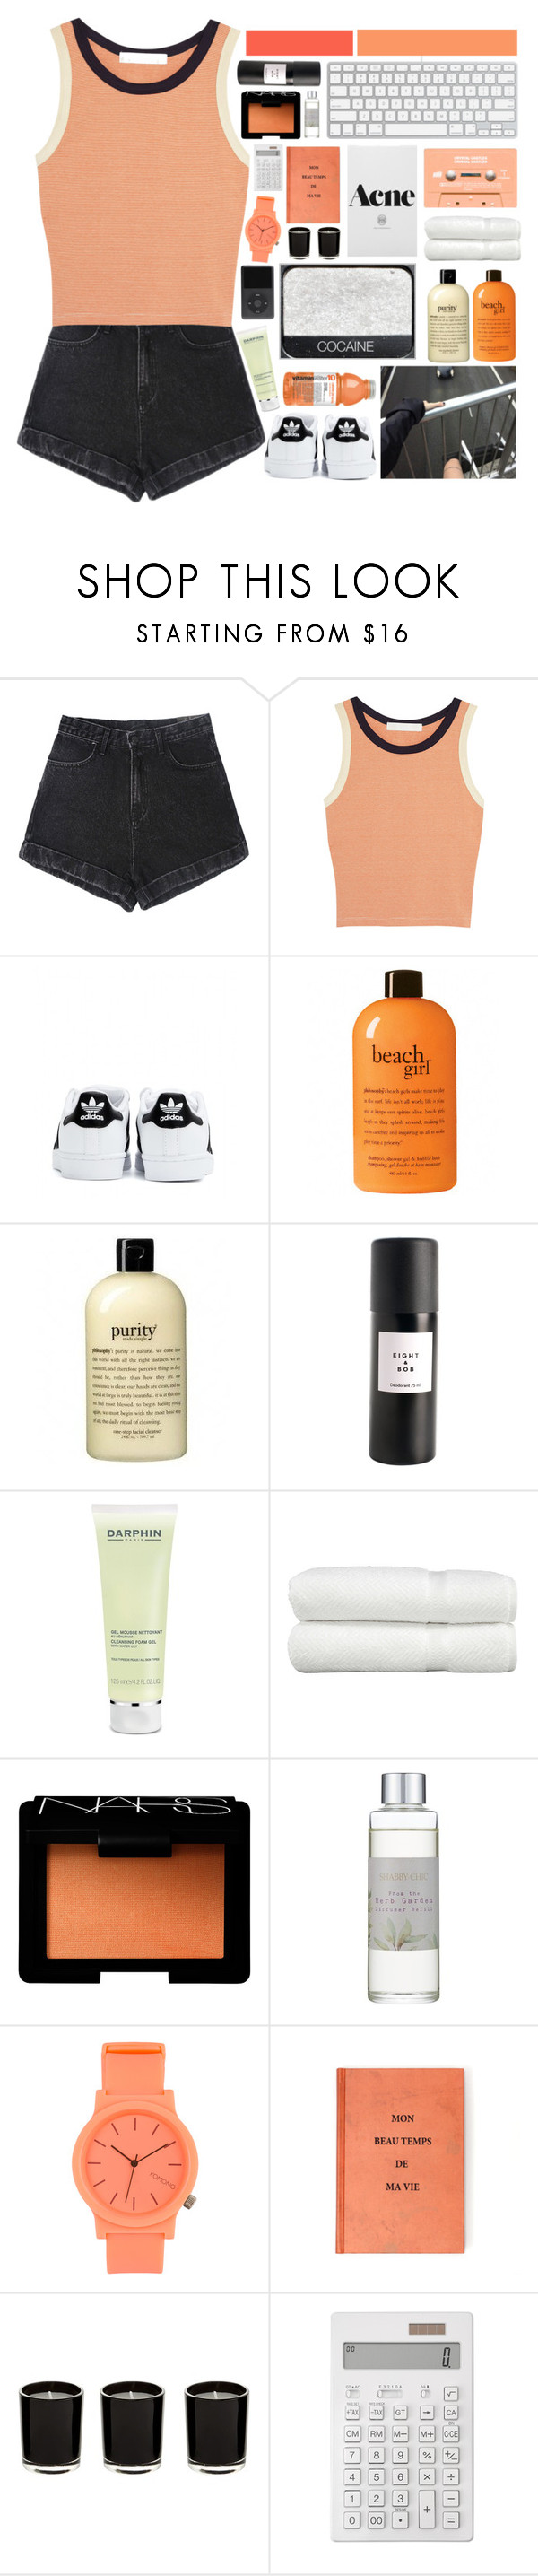 """""""♛ because i can ♛"""" by i-smell-grunge ❤ liked on Polyvore featuring Kain, adidas, philosophy, Eight & Bob, Darphin, Linum Home Textiles, NARS Cosmetics, Shabby Chic, Komono and Muji"""